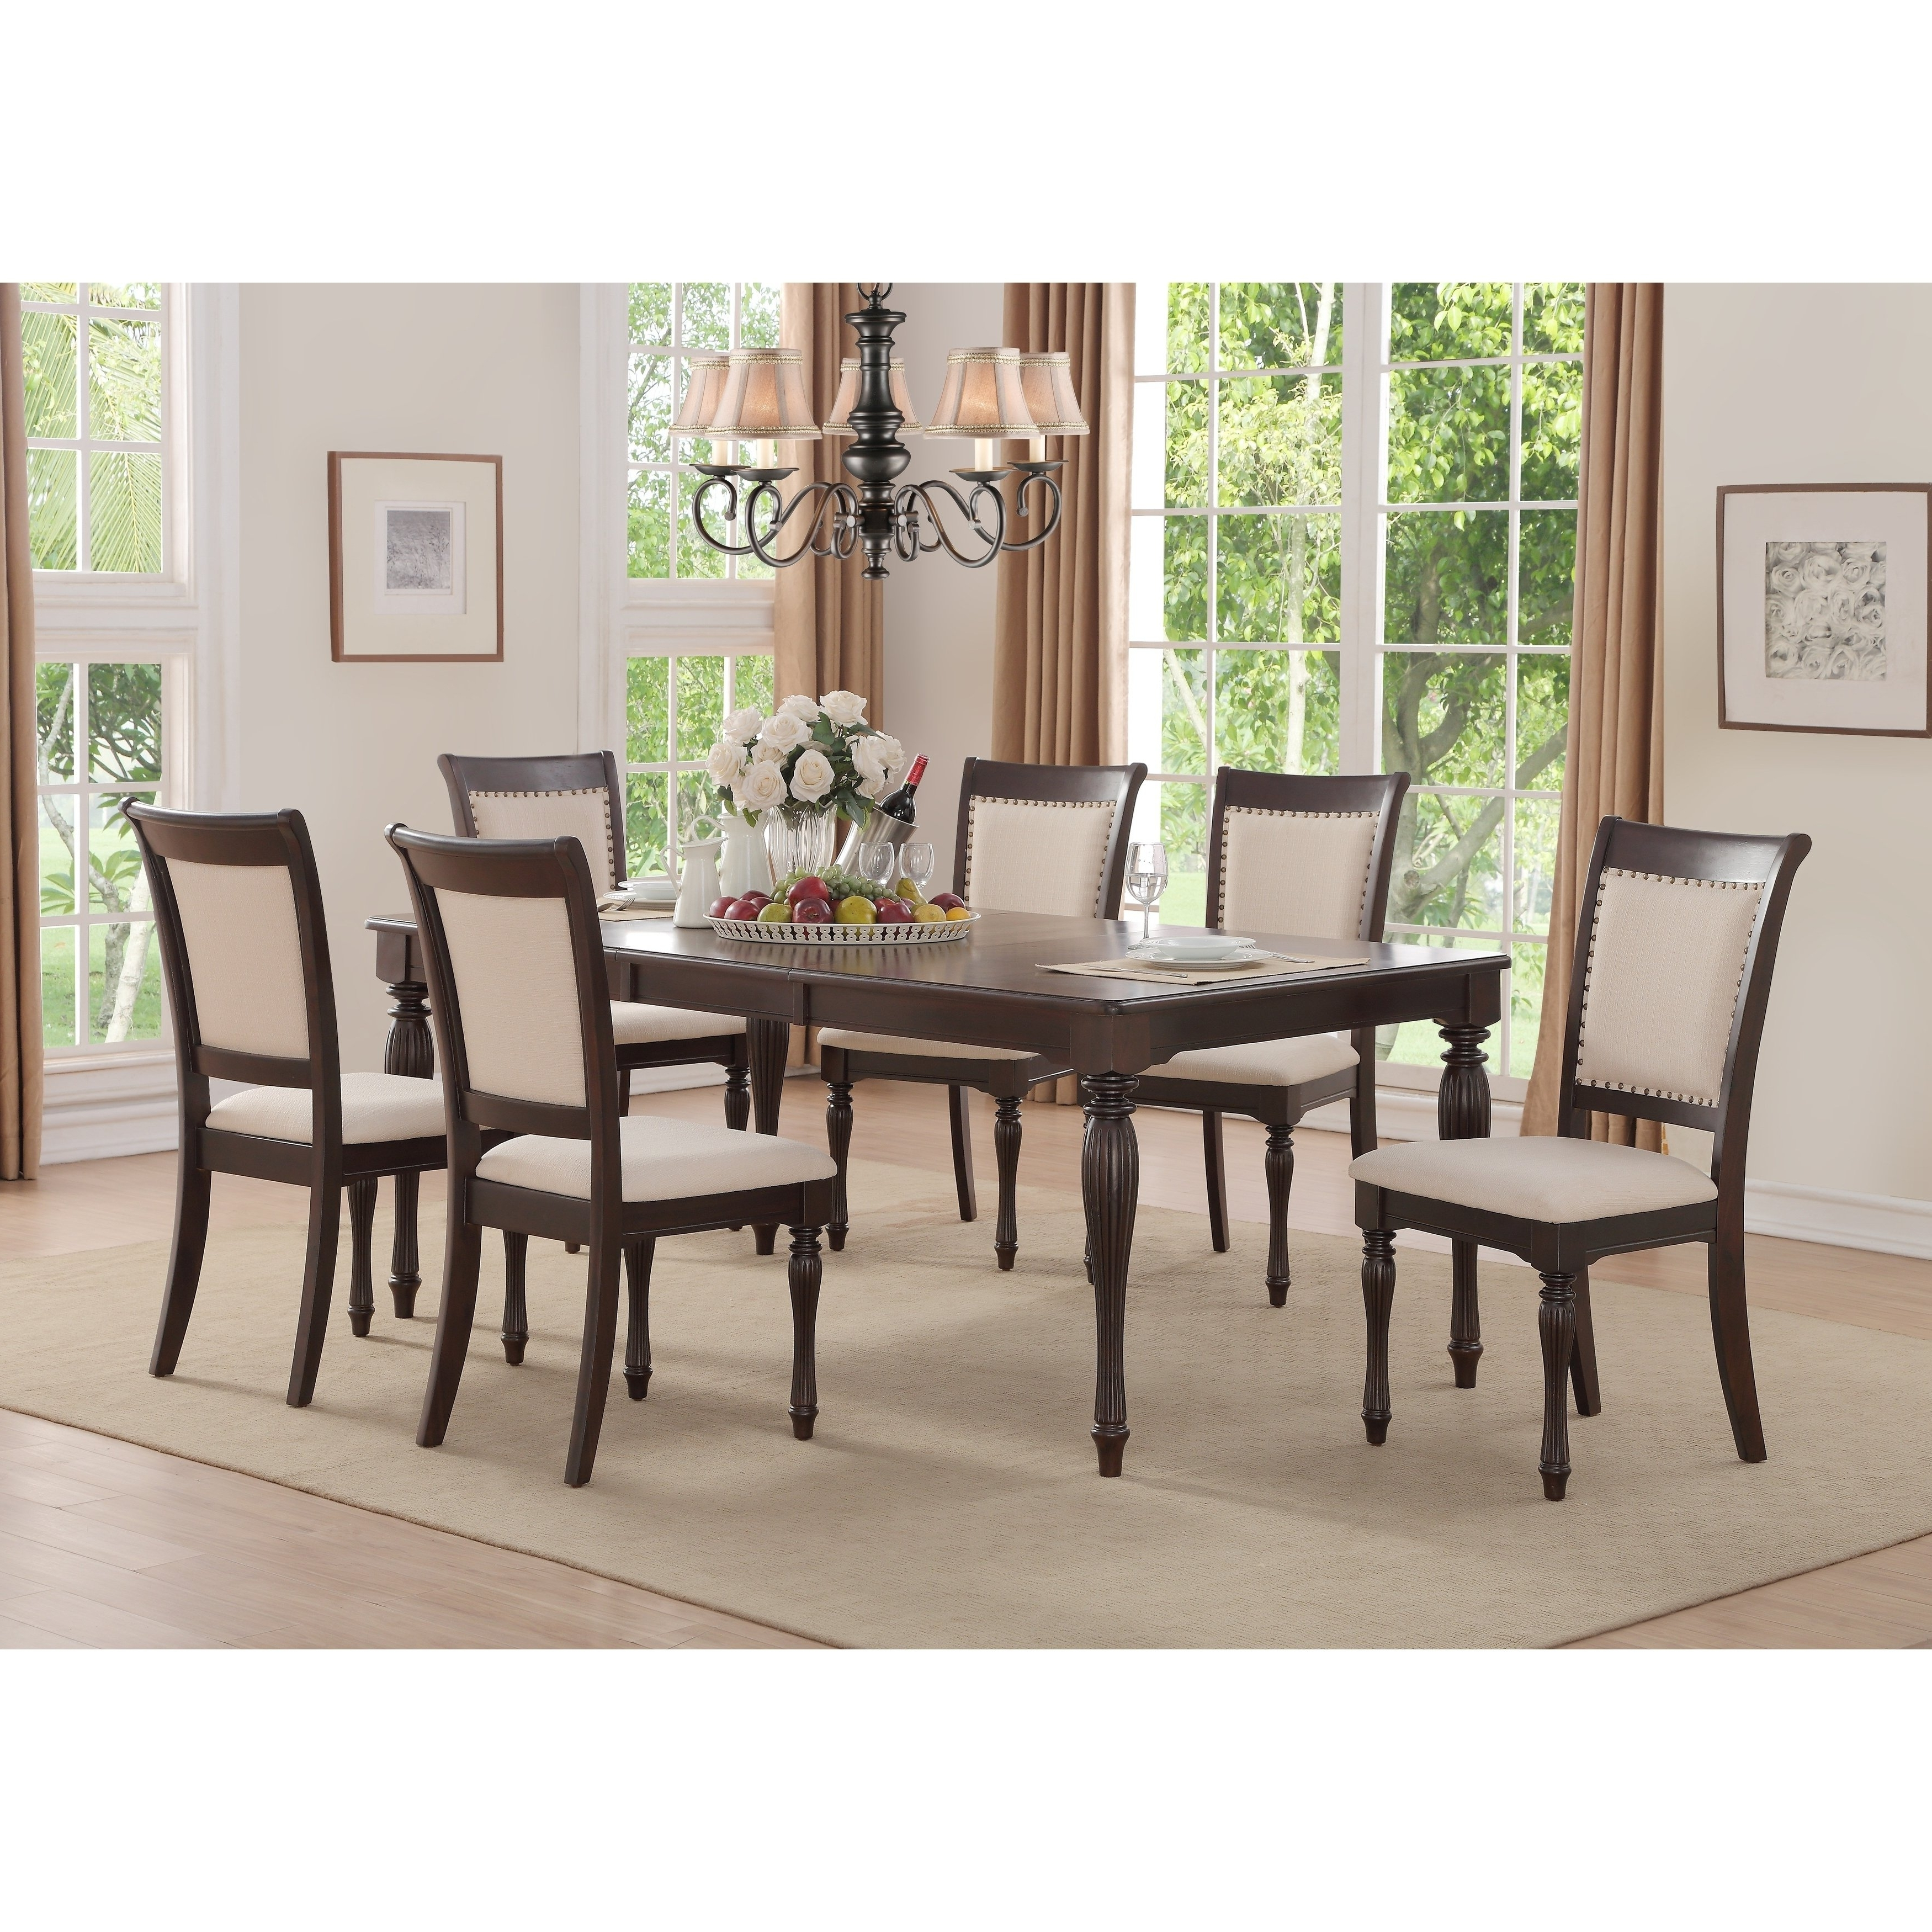 Shop Home Source Penelope Ivory 5 Piece Dining Set With 1 Table And Inside Favorite Caden 6 Piece Rectangle Dining Sets (View 20 of 25)